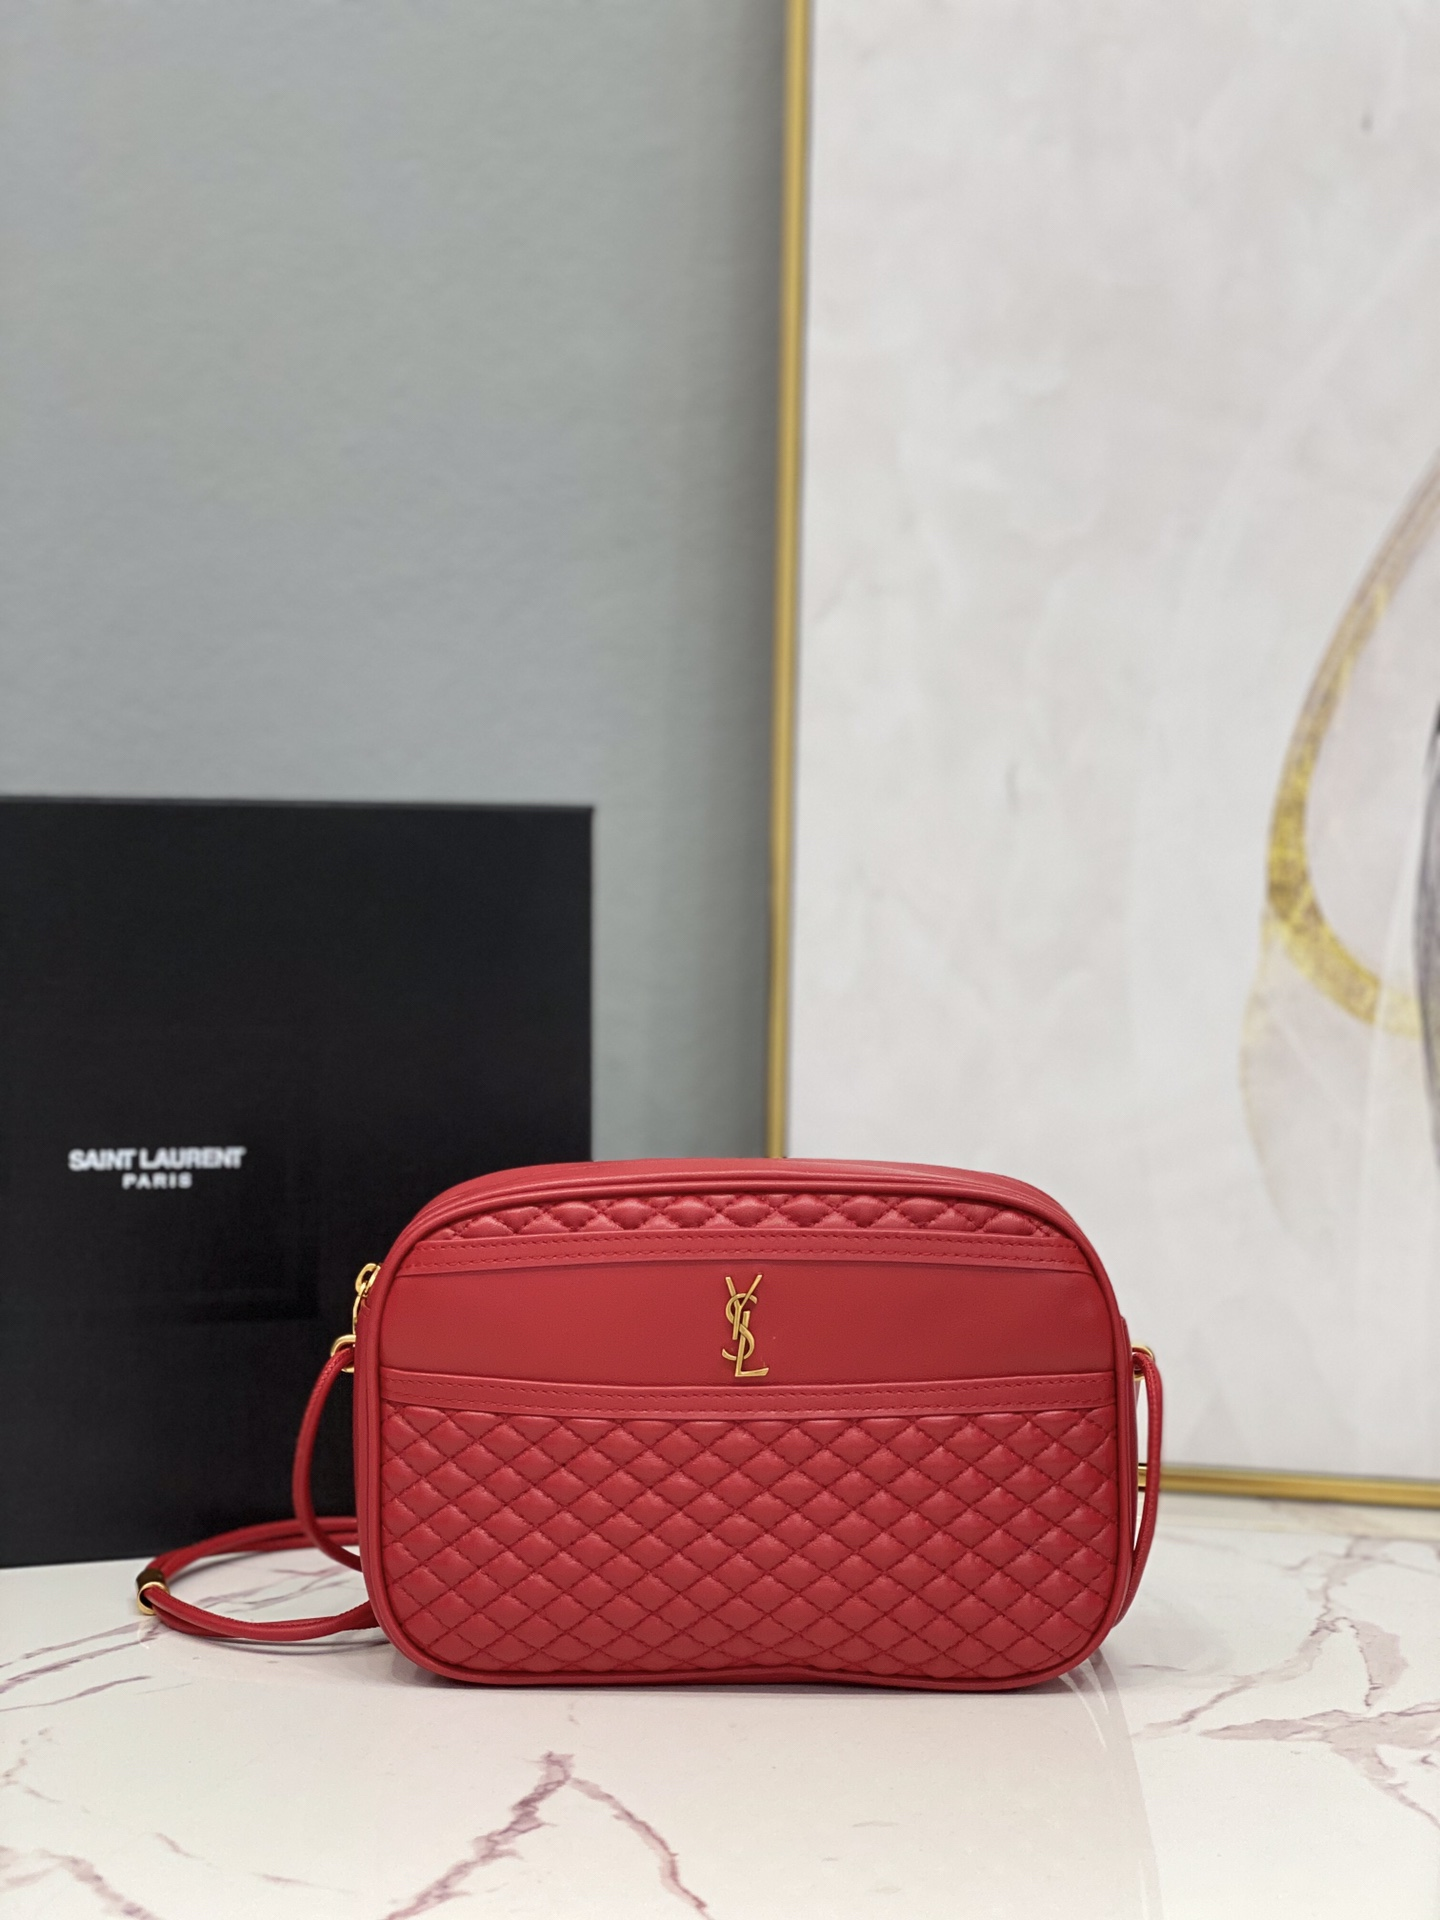 2021 Saint Laurent victoire camera bag in quilted lambskin red